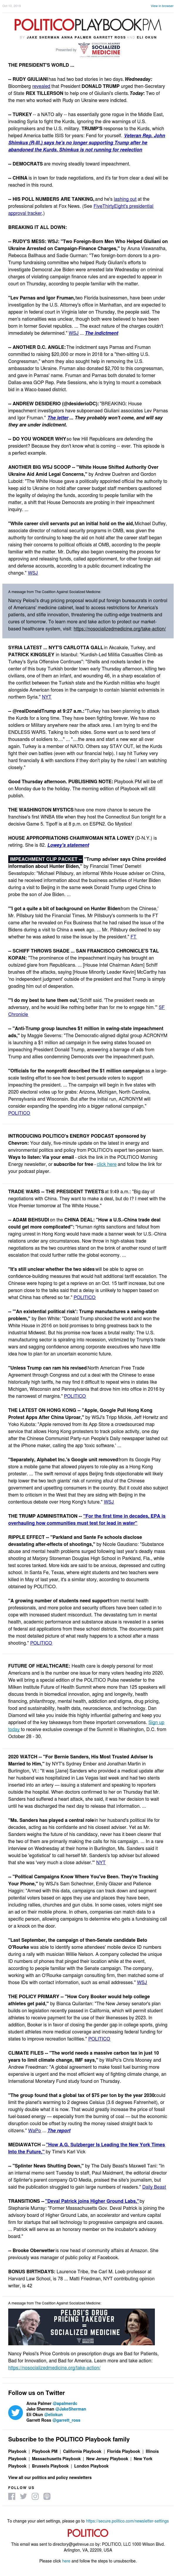 Playbook PM: Trump's world of political pain